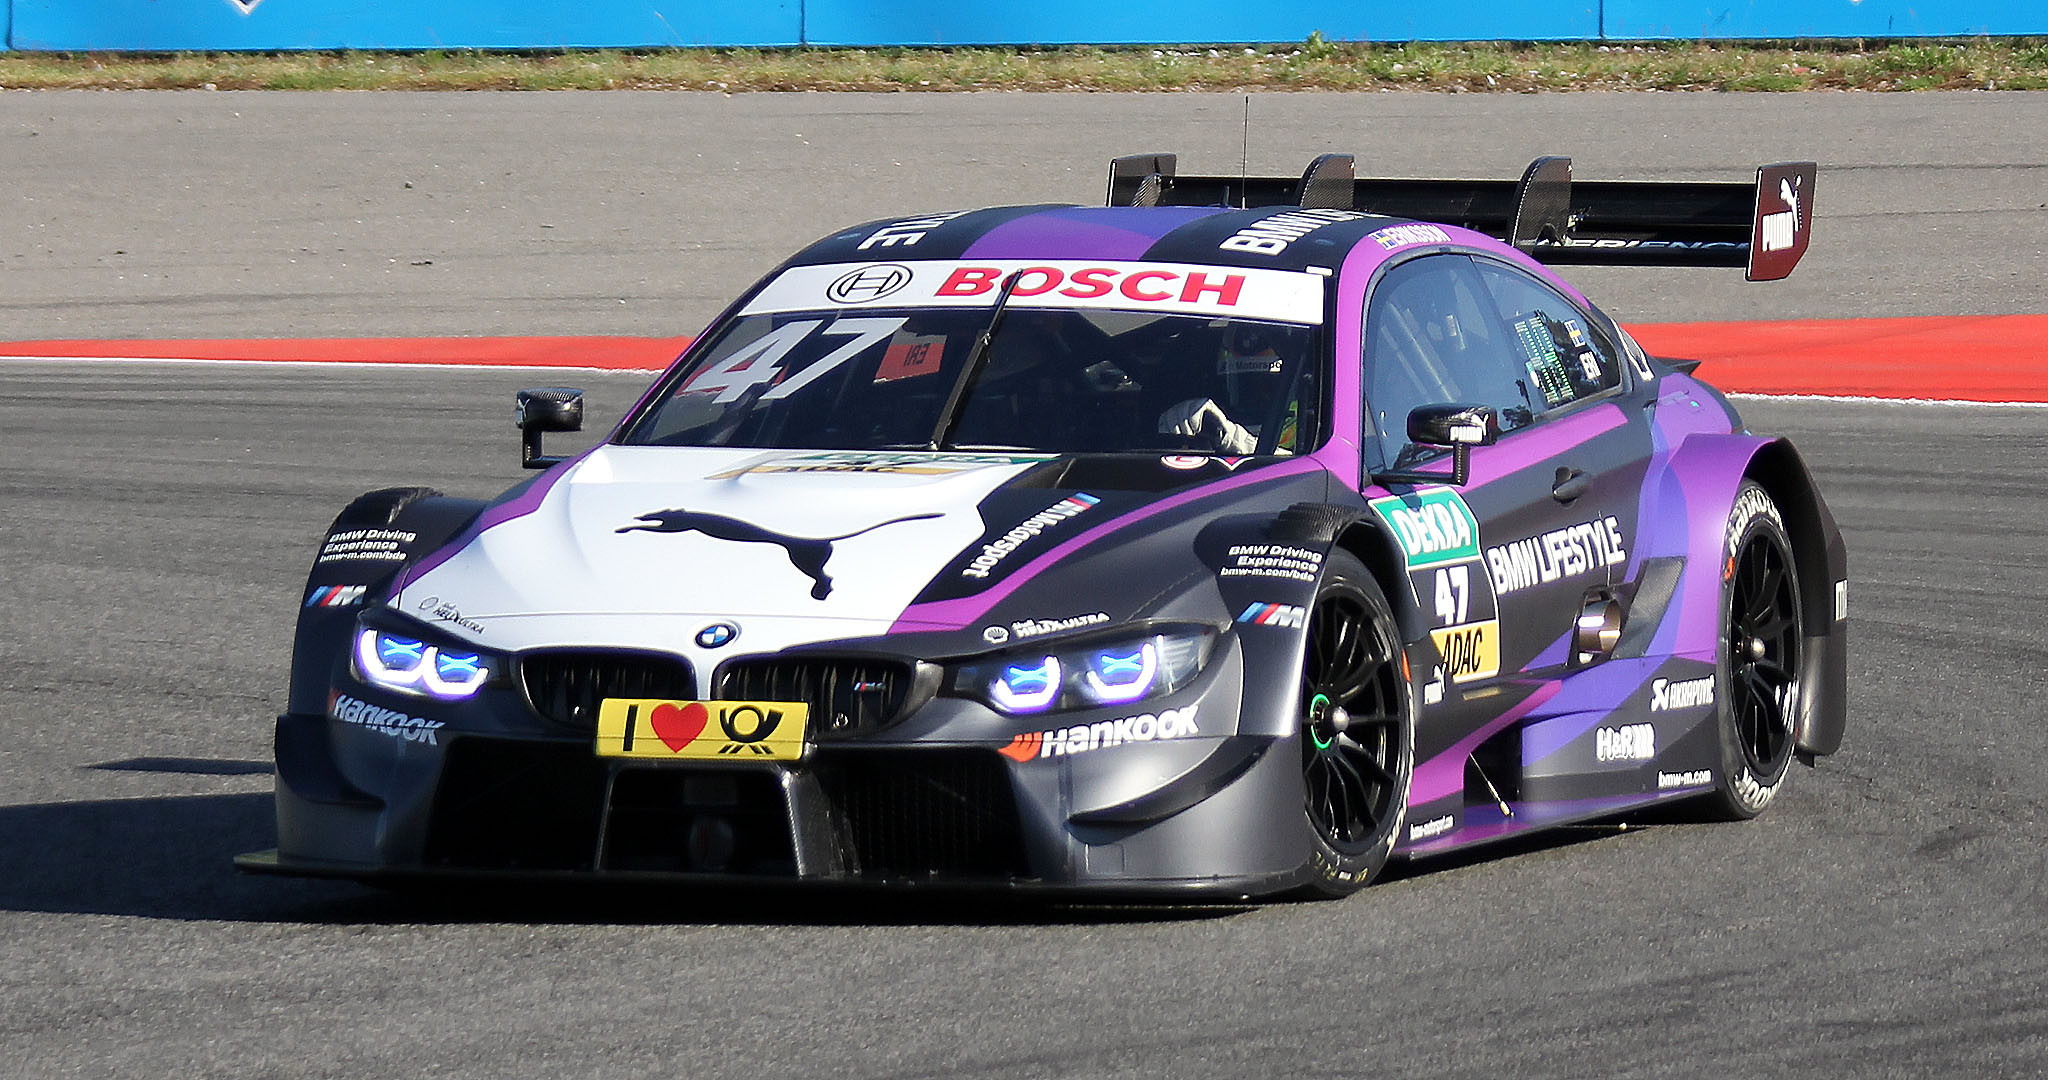 Bmw X Lm E likewise Bmw M M Performance Livery moreover Mclaren M B Chevrolet furthermore Bmw Seriestouring L Df E Ea B moreover Lola T Cosworth. on bmw touring race car